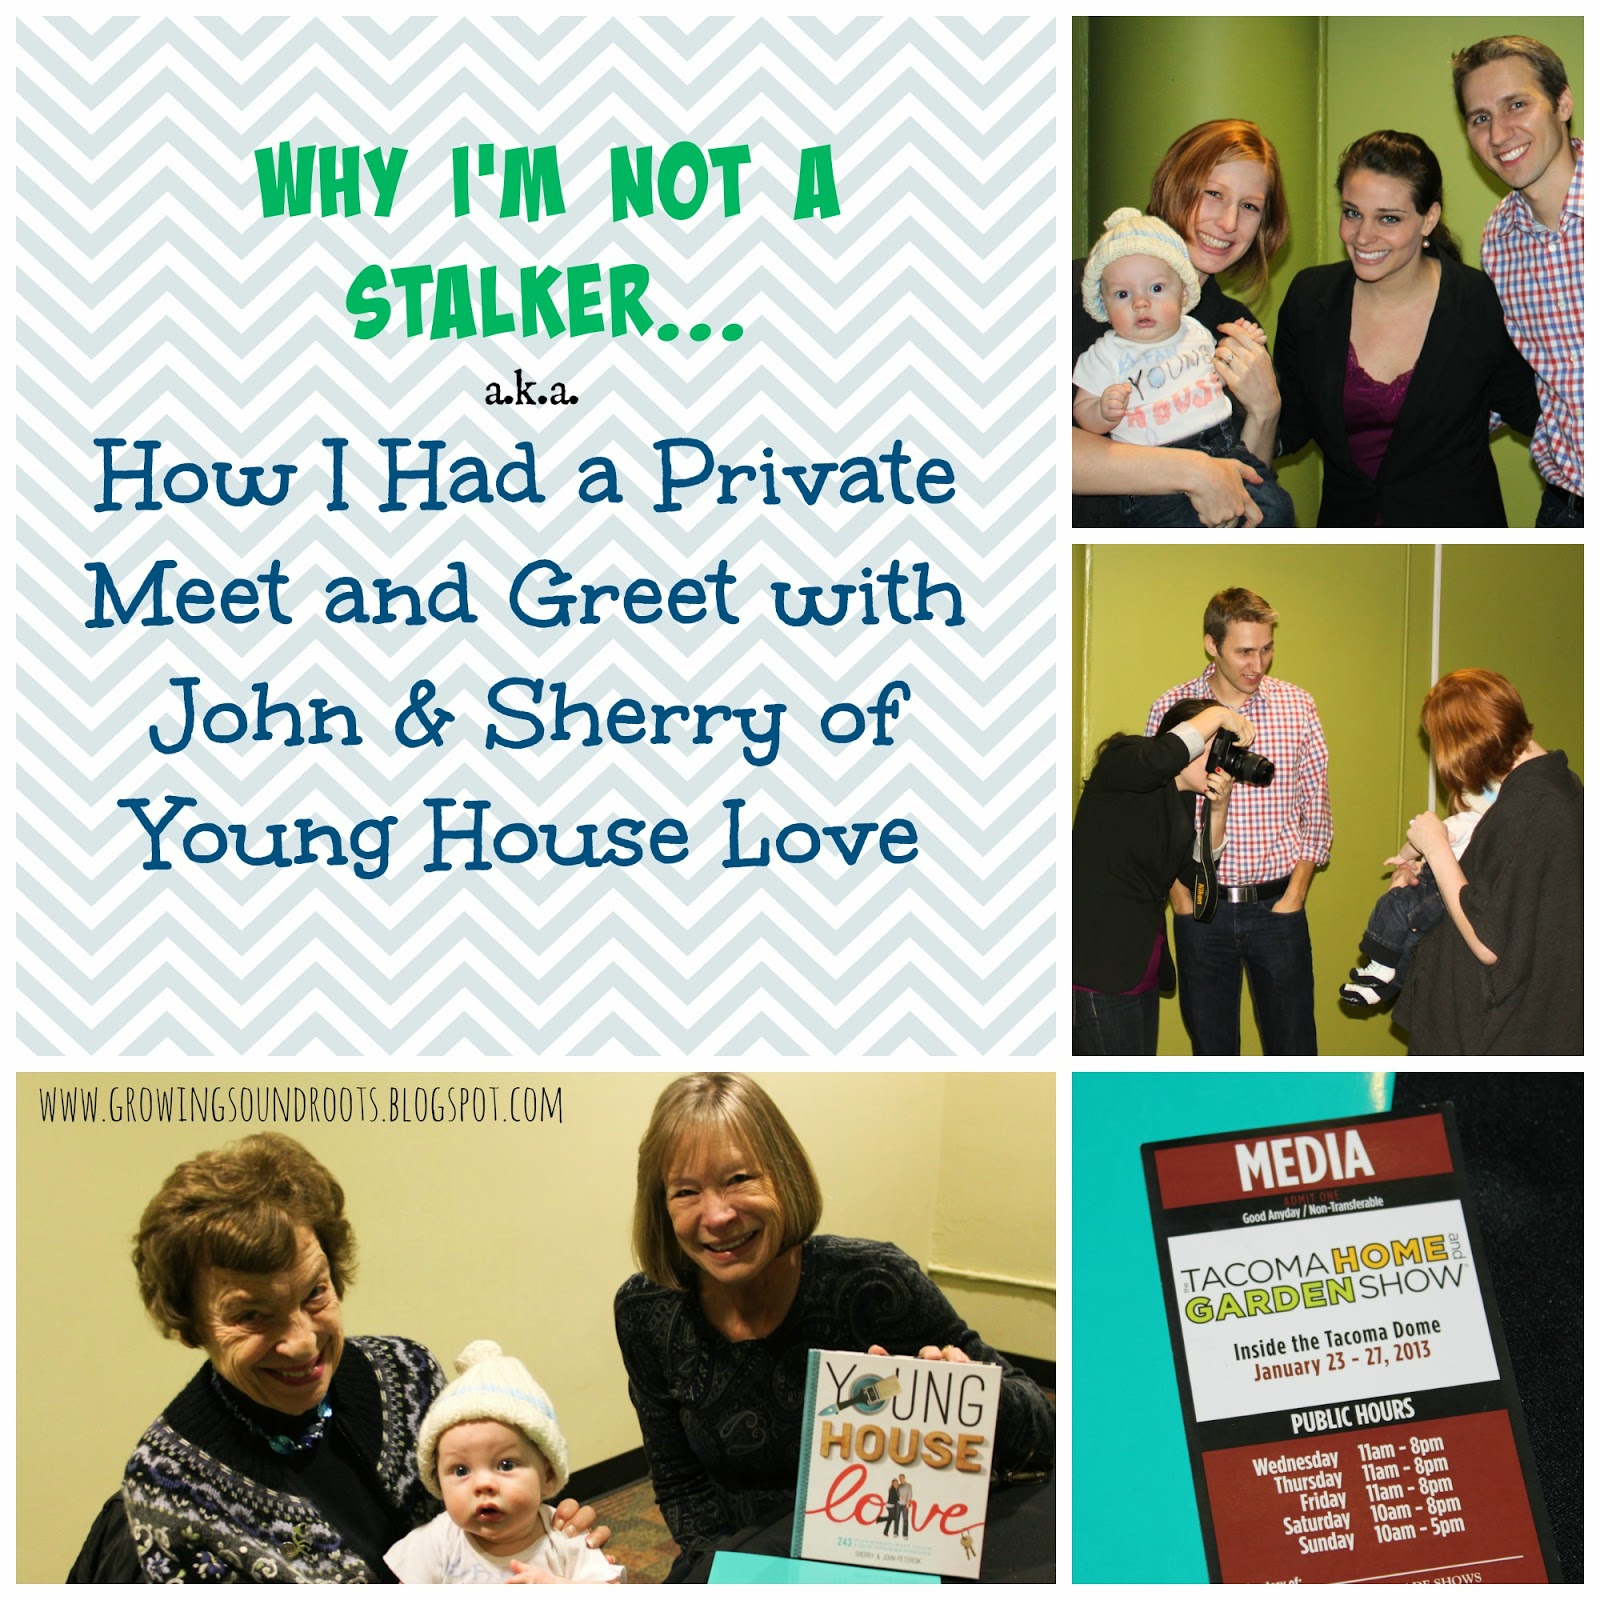 Why im not a stalker how i had a private meet greet with john its not like stalking is beneath mei mean watch out kenny chesney and tim mcgraw its just that young house lovin couples just arent quite my thang m4hsunfo